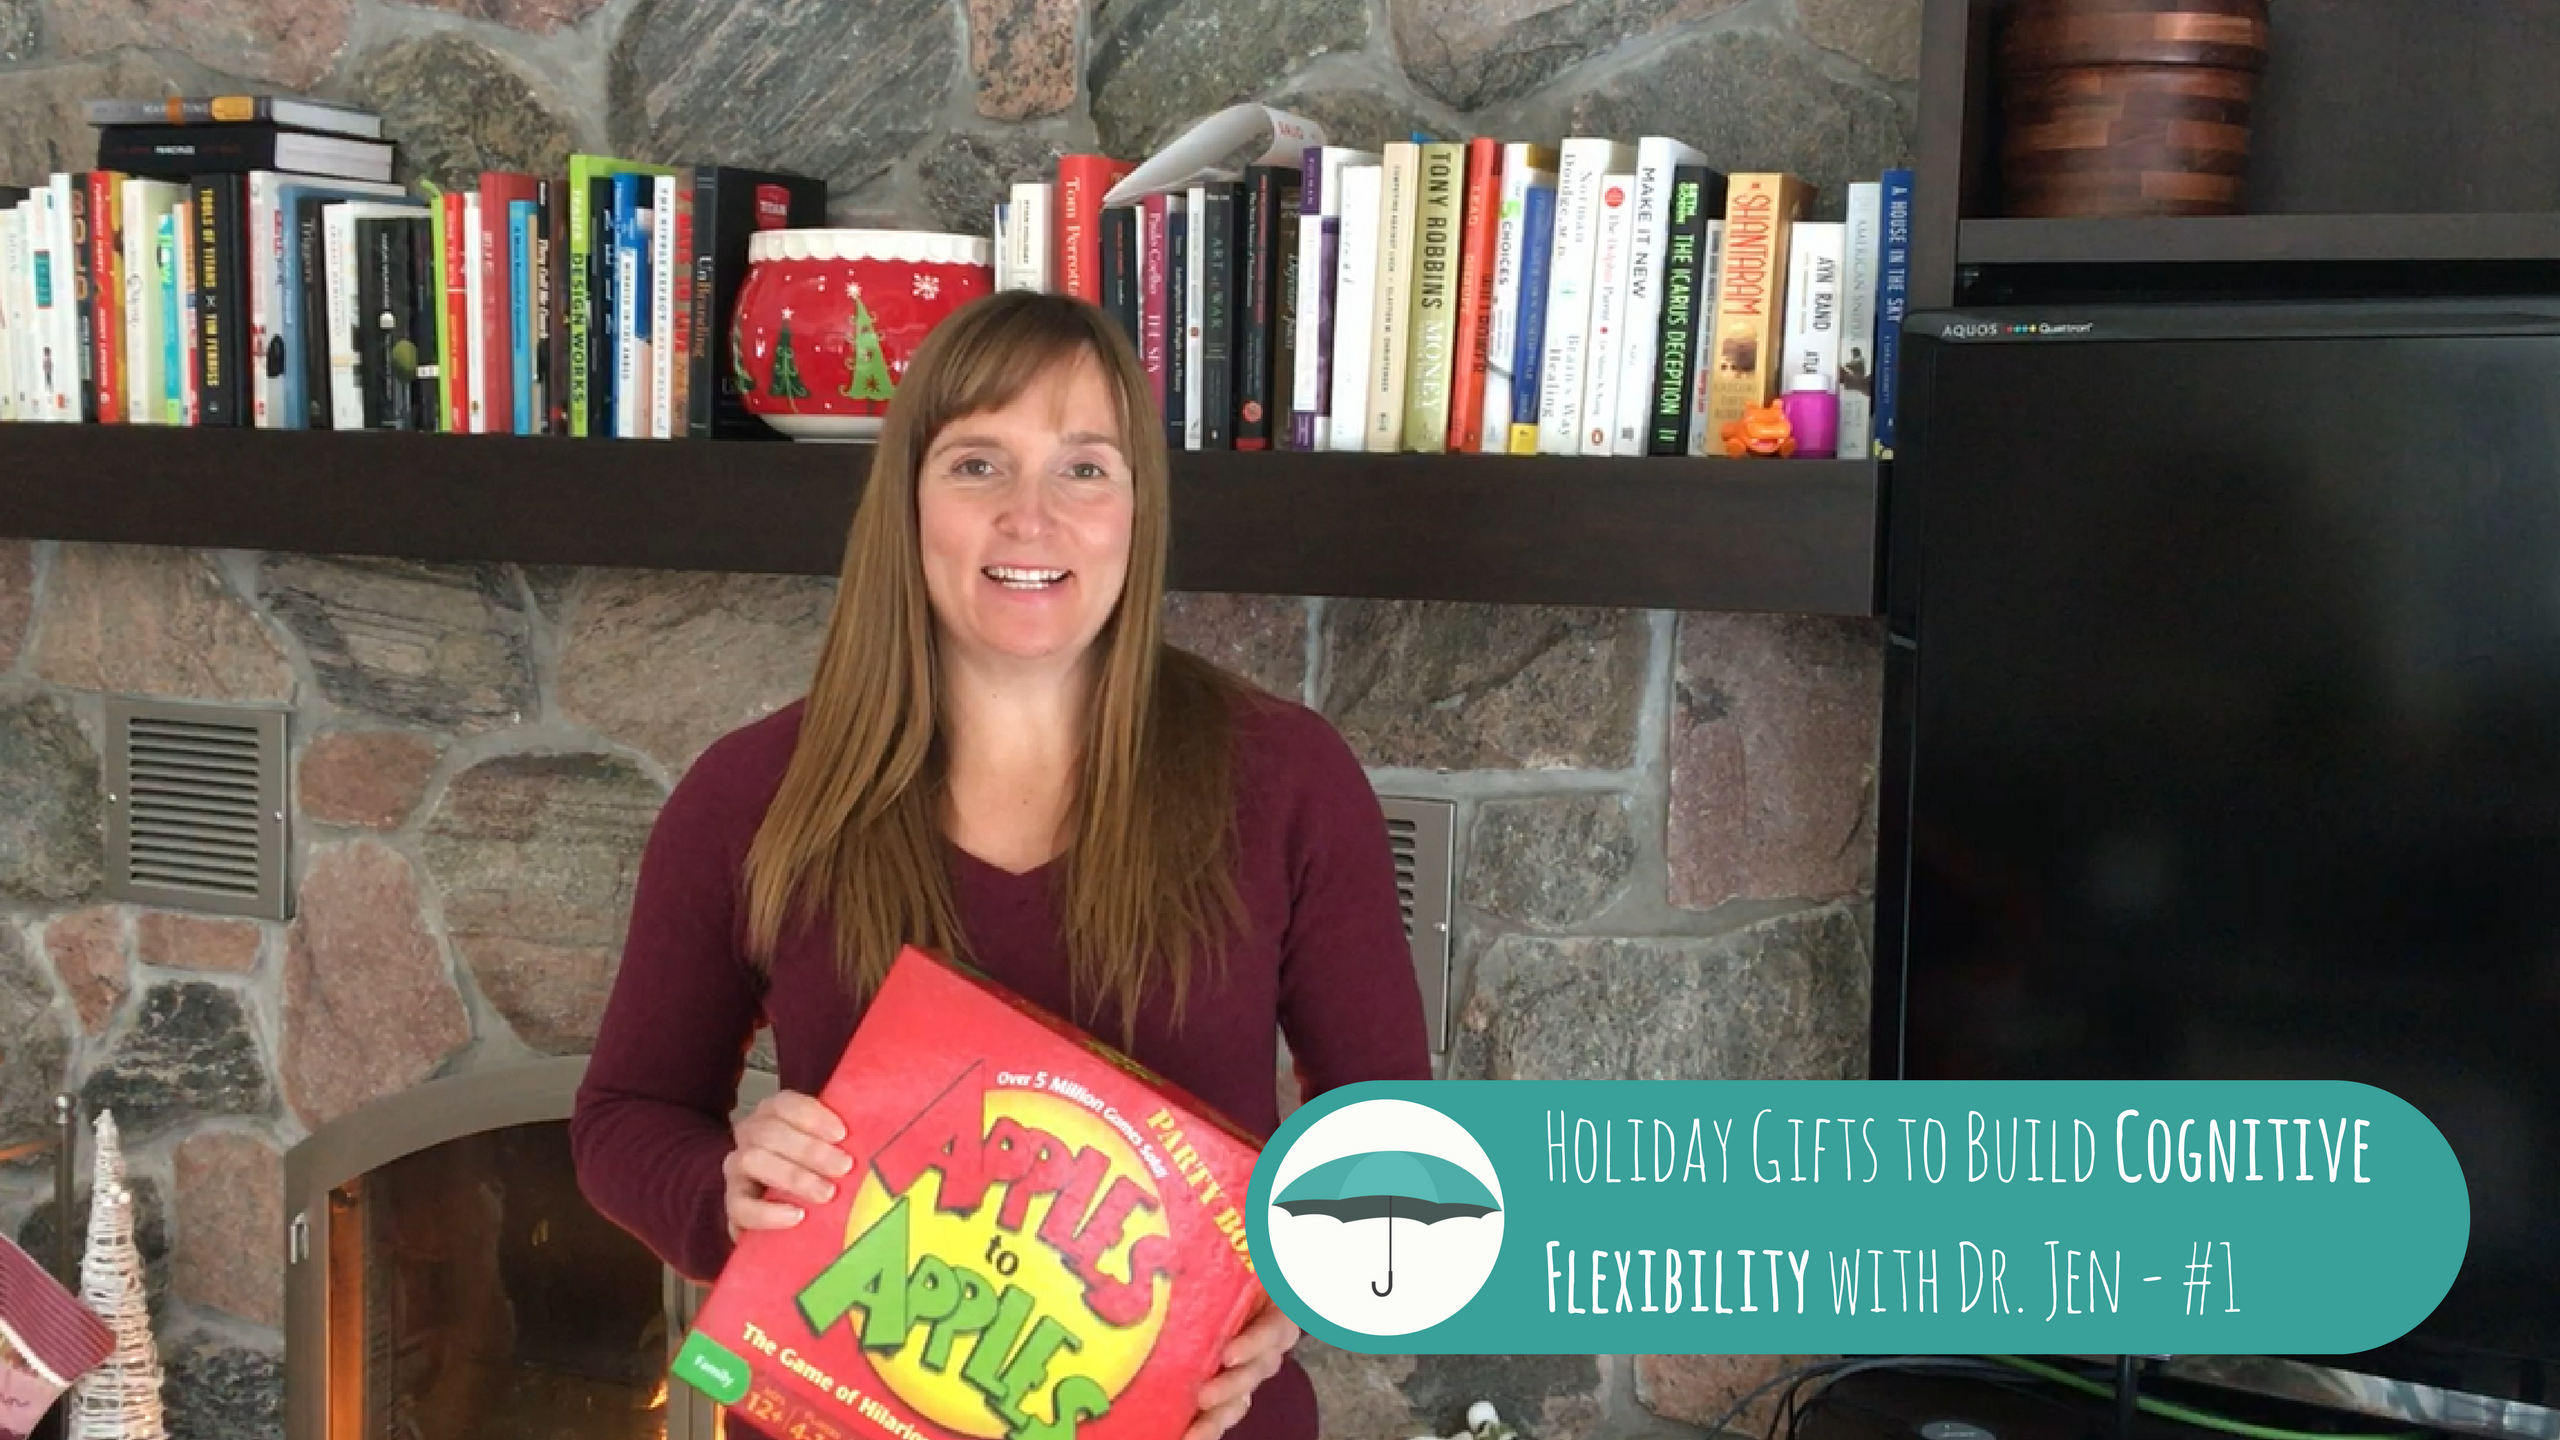 Holiday Gifts to Build Cognitive Flexibility